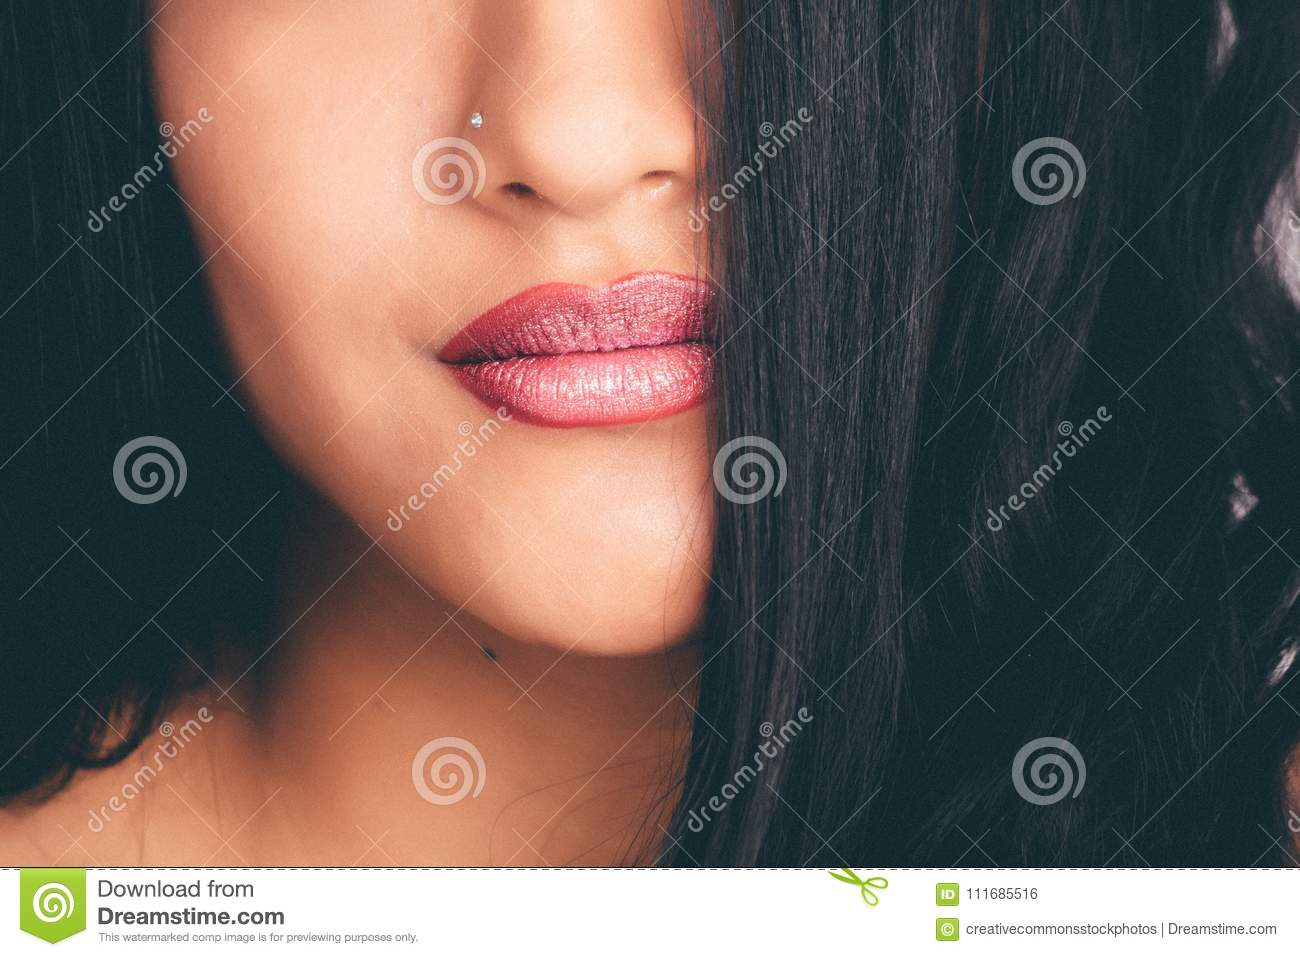 Woman With Silver Colored Nose Pin Picture Image 111685516